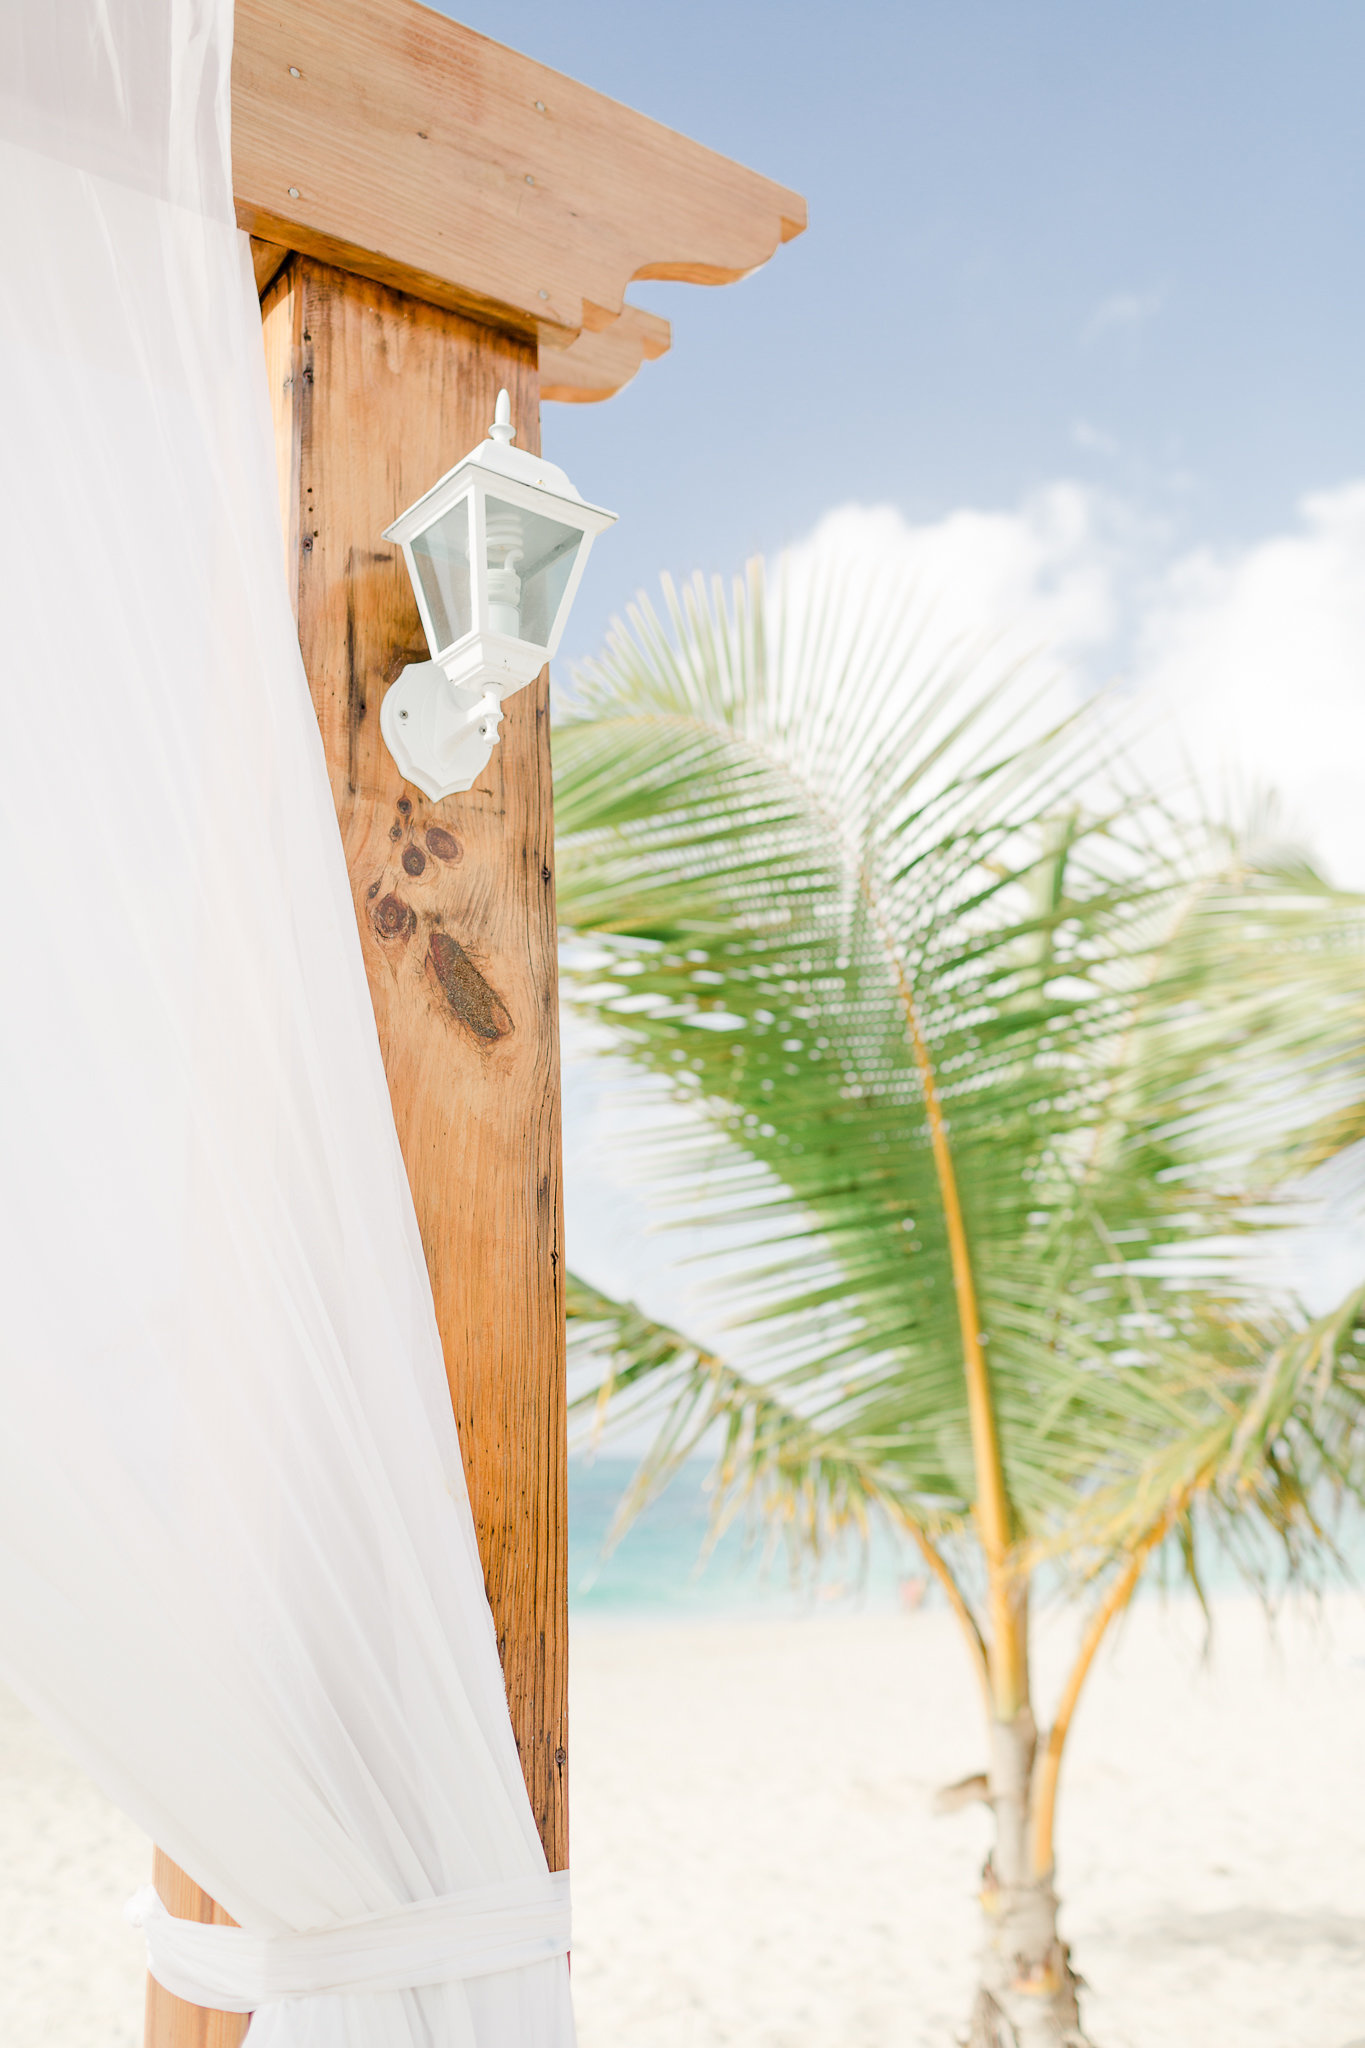 photographe-mariage-punta-cana-republique-dominicaine-lisa-renault-photographie-wedding-destination-photographer-29